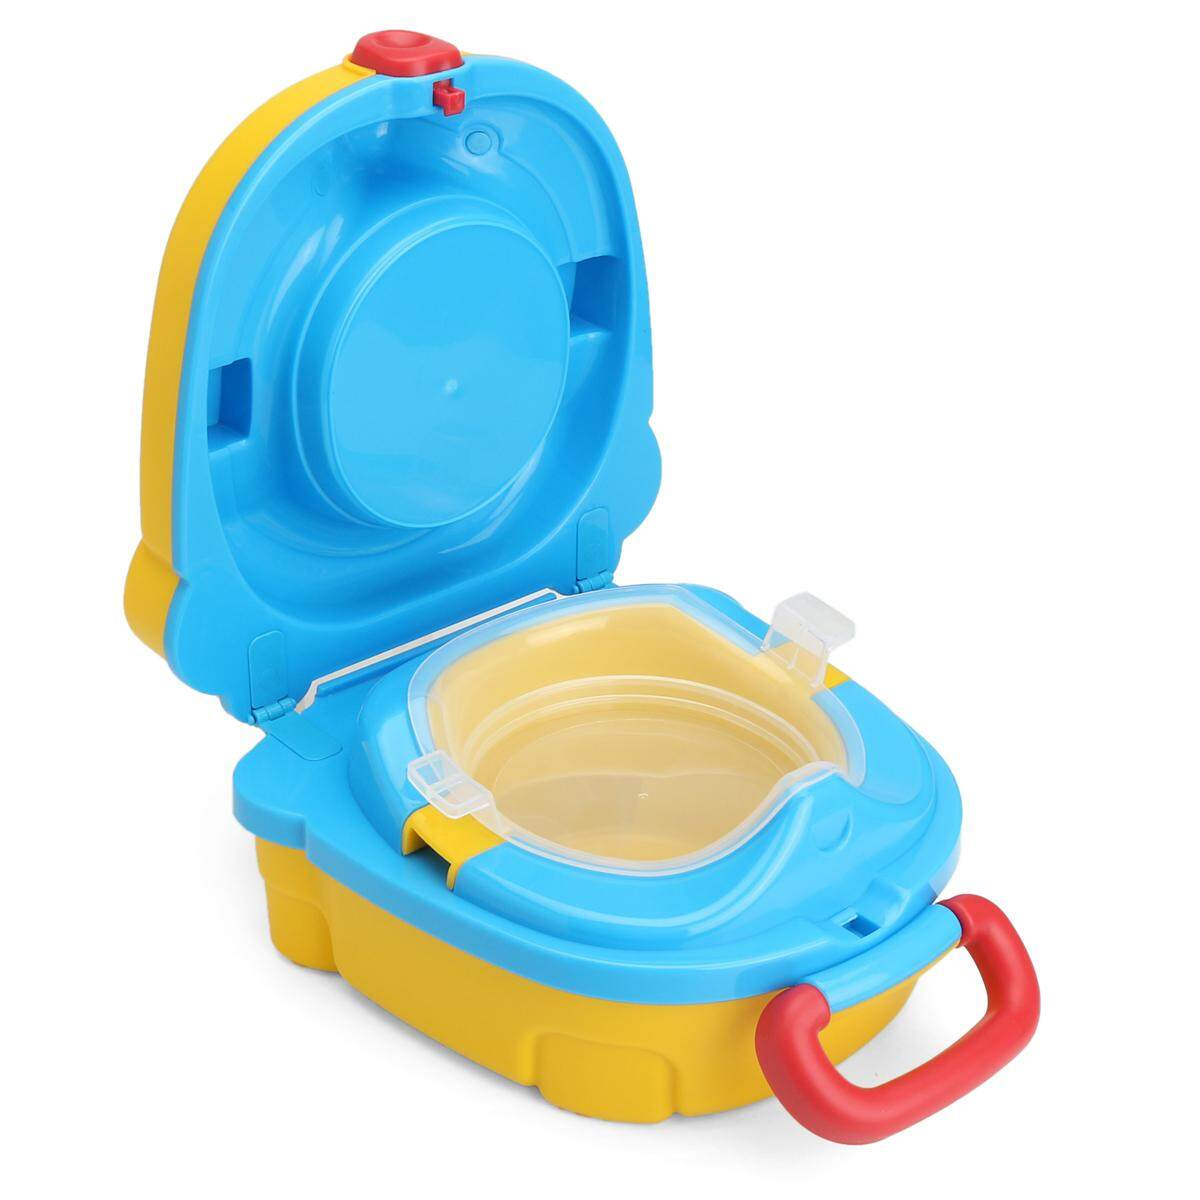 Kid Baby Toddler Portable Travel Potty Urinal Toilet Pee Pot Training Seat Chair Yellow - intl